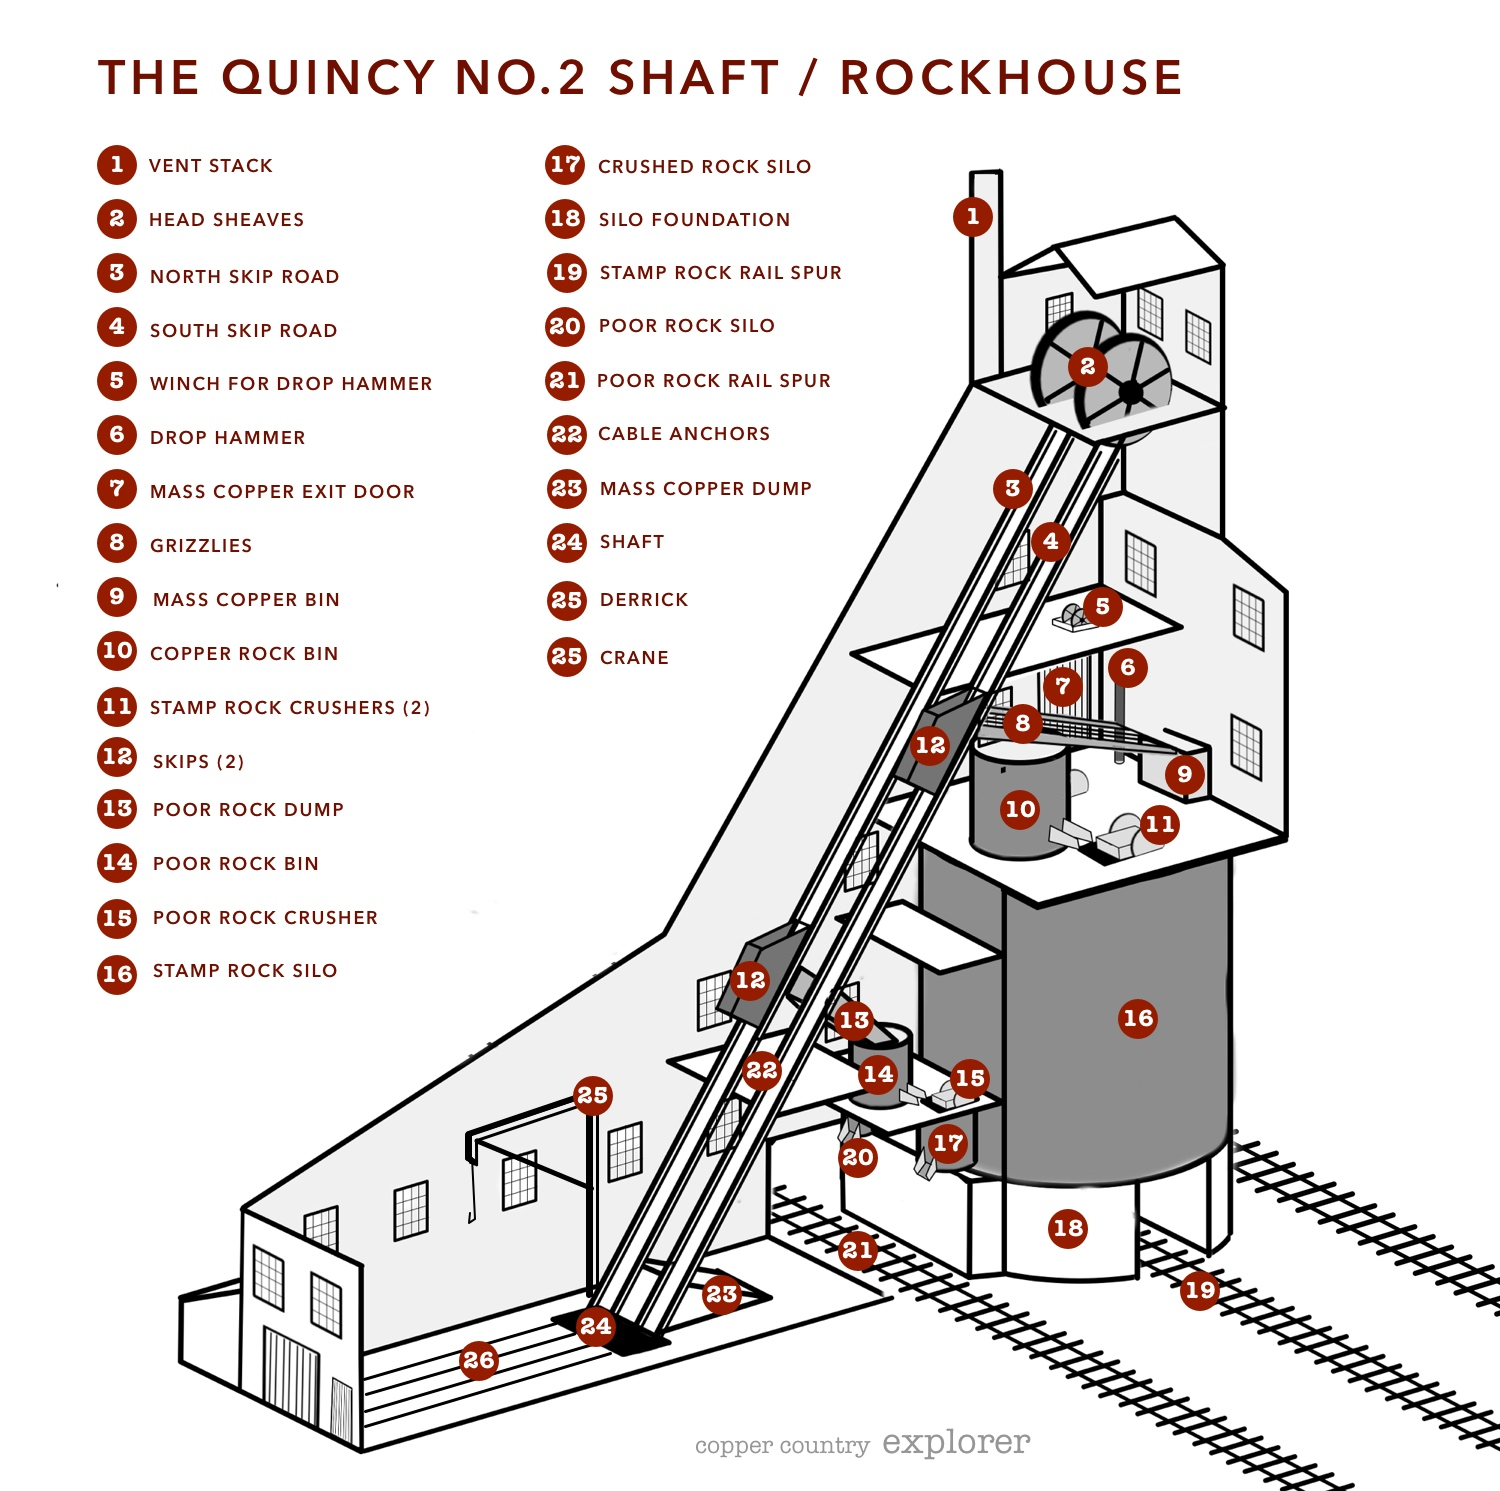 Cutaway View of the Quincy No.2 Shaft /Rockhouse